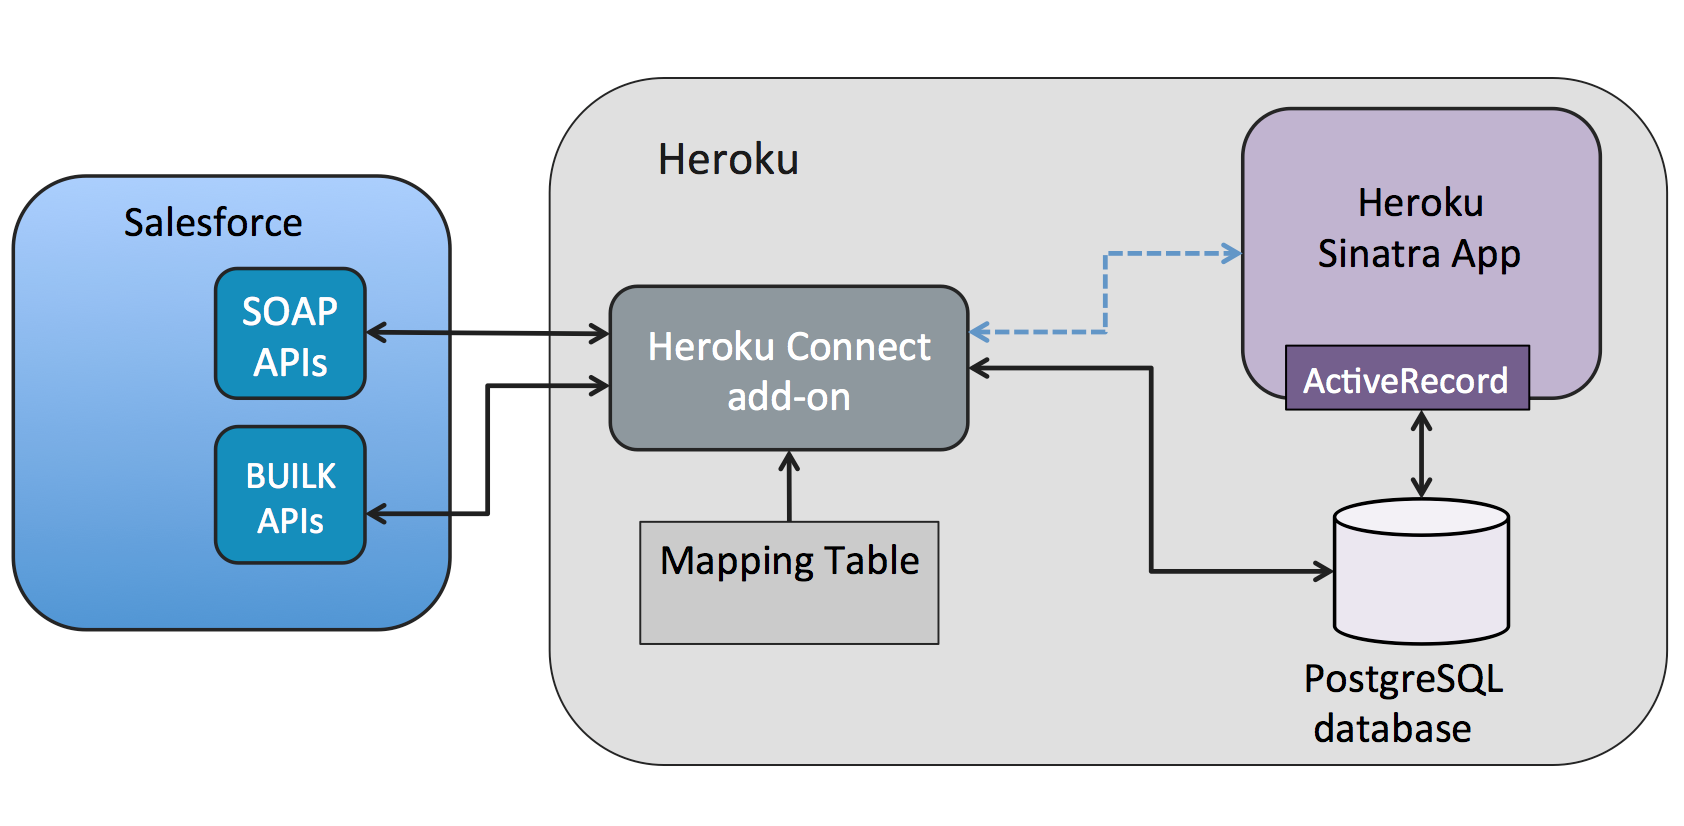 ../_images/heroku-connect-flow-sinatra.png